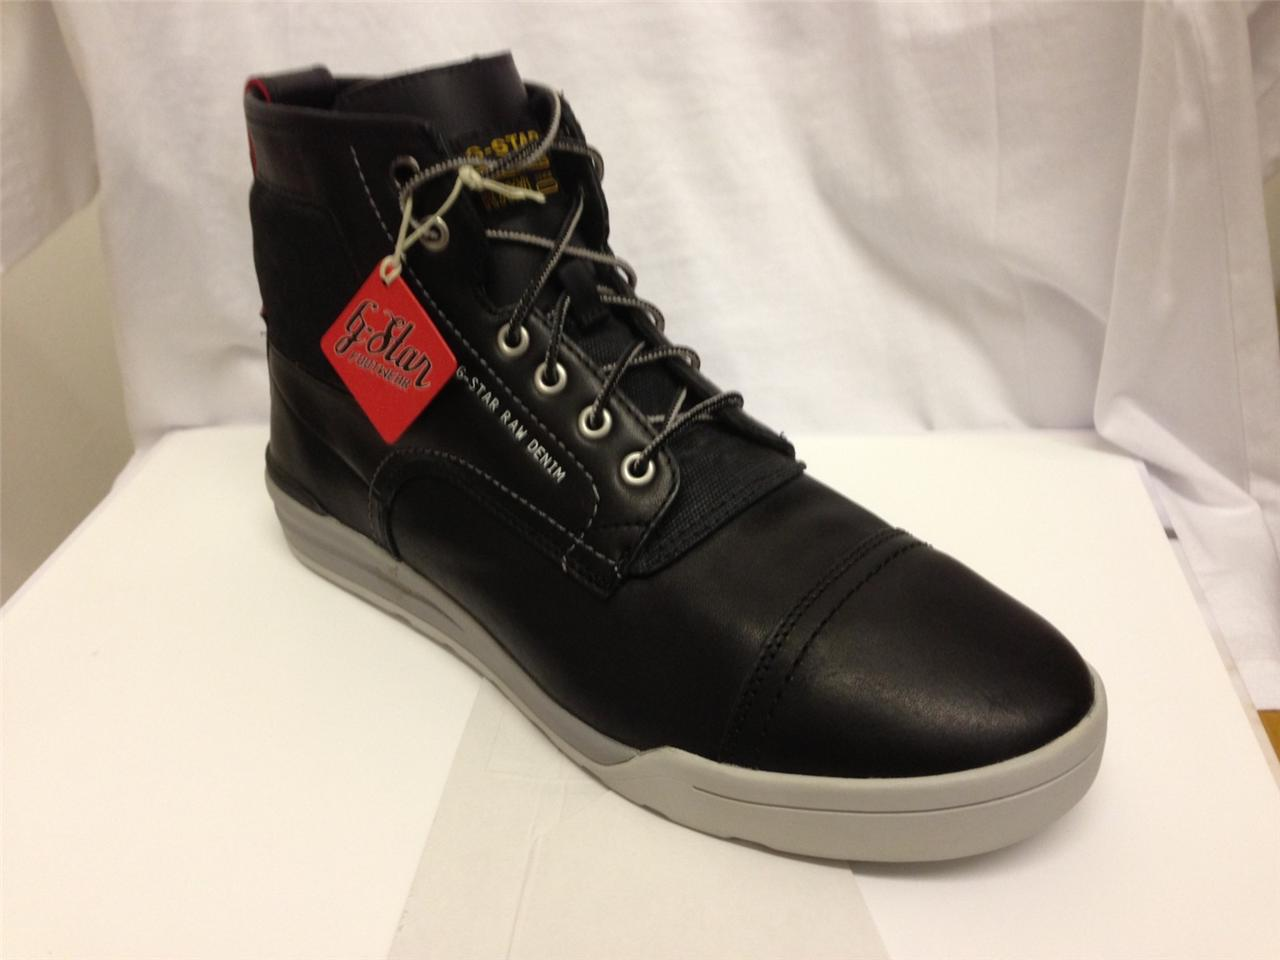 g star gstar raw boulder mantle mens black leather casual boot bnib ebay. Black Bedroom Furniture Sets. Home Design Ideas